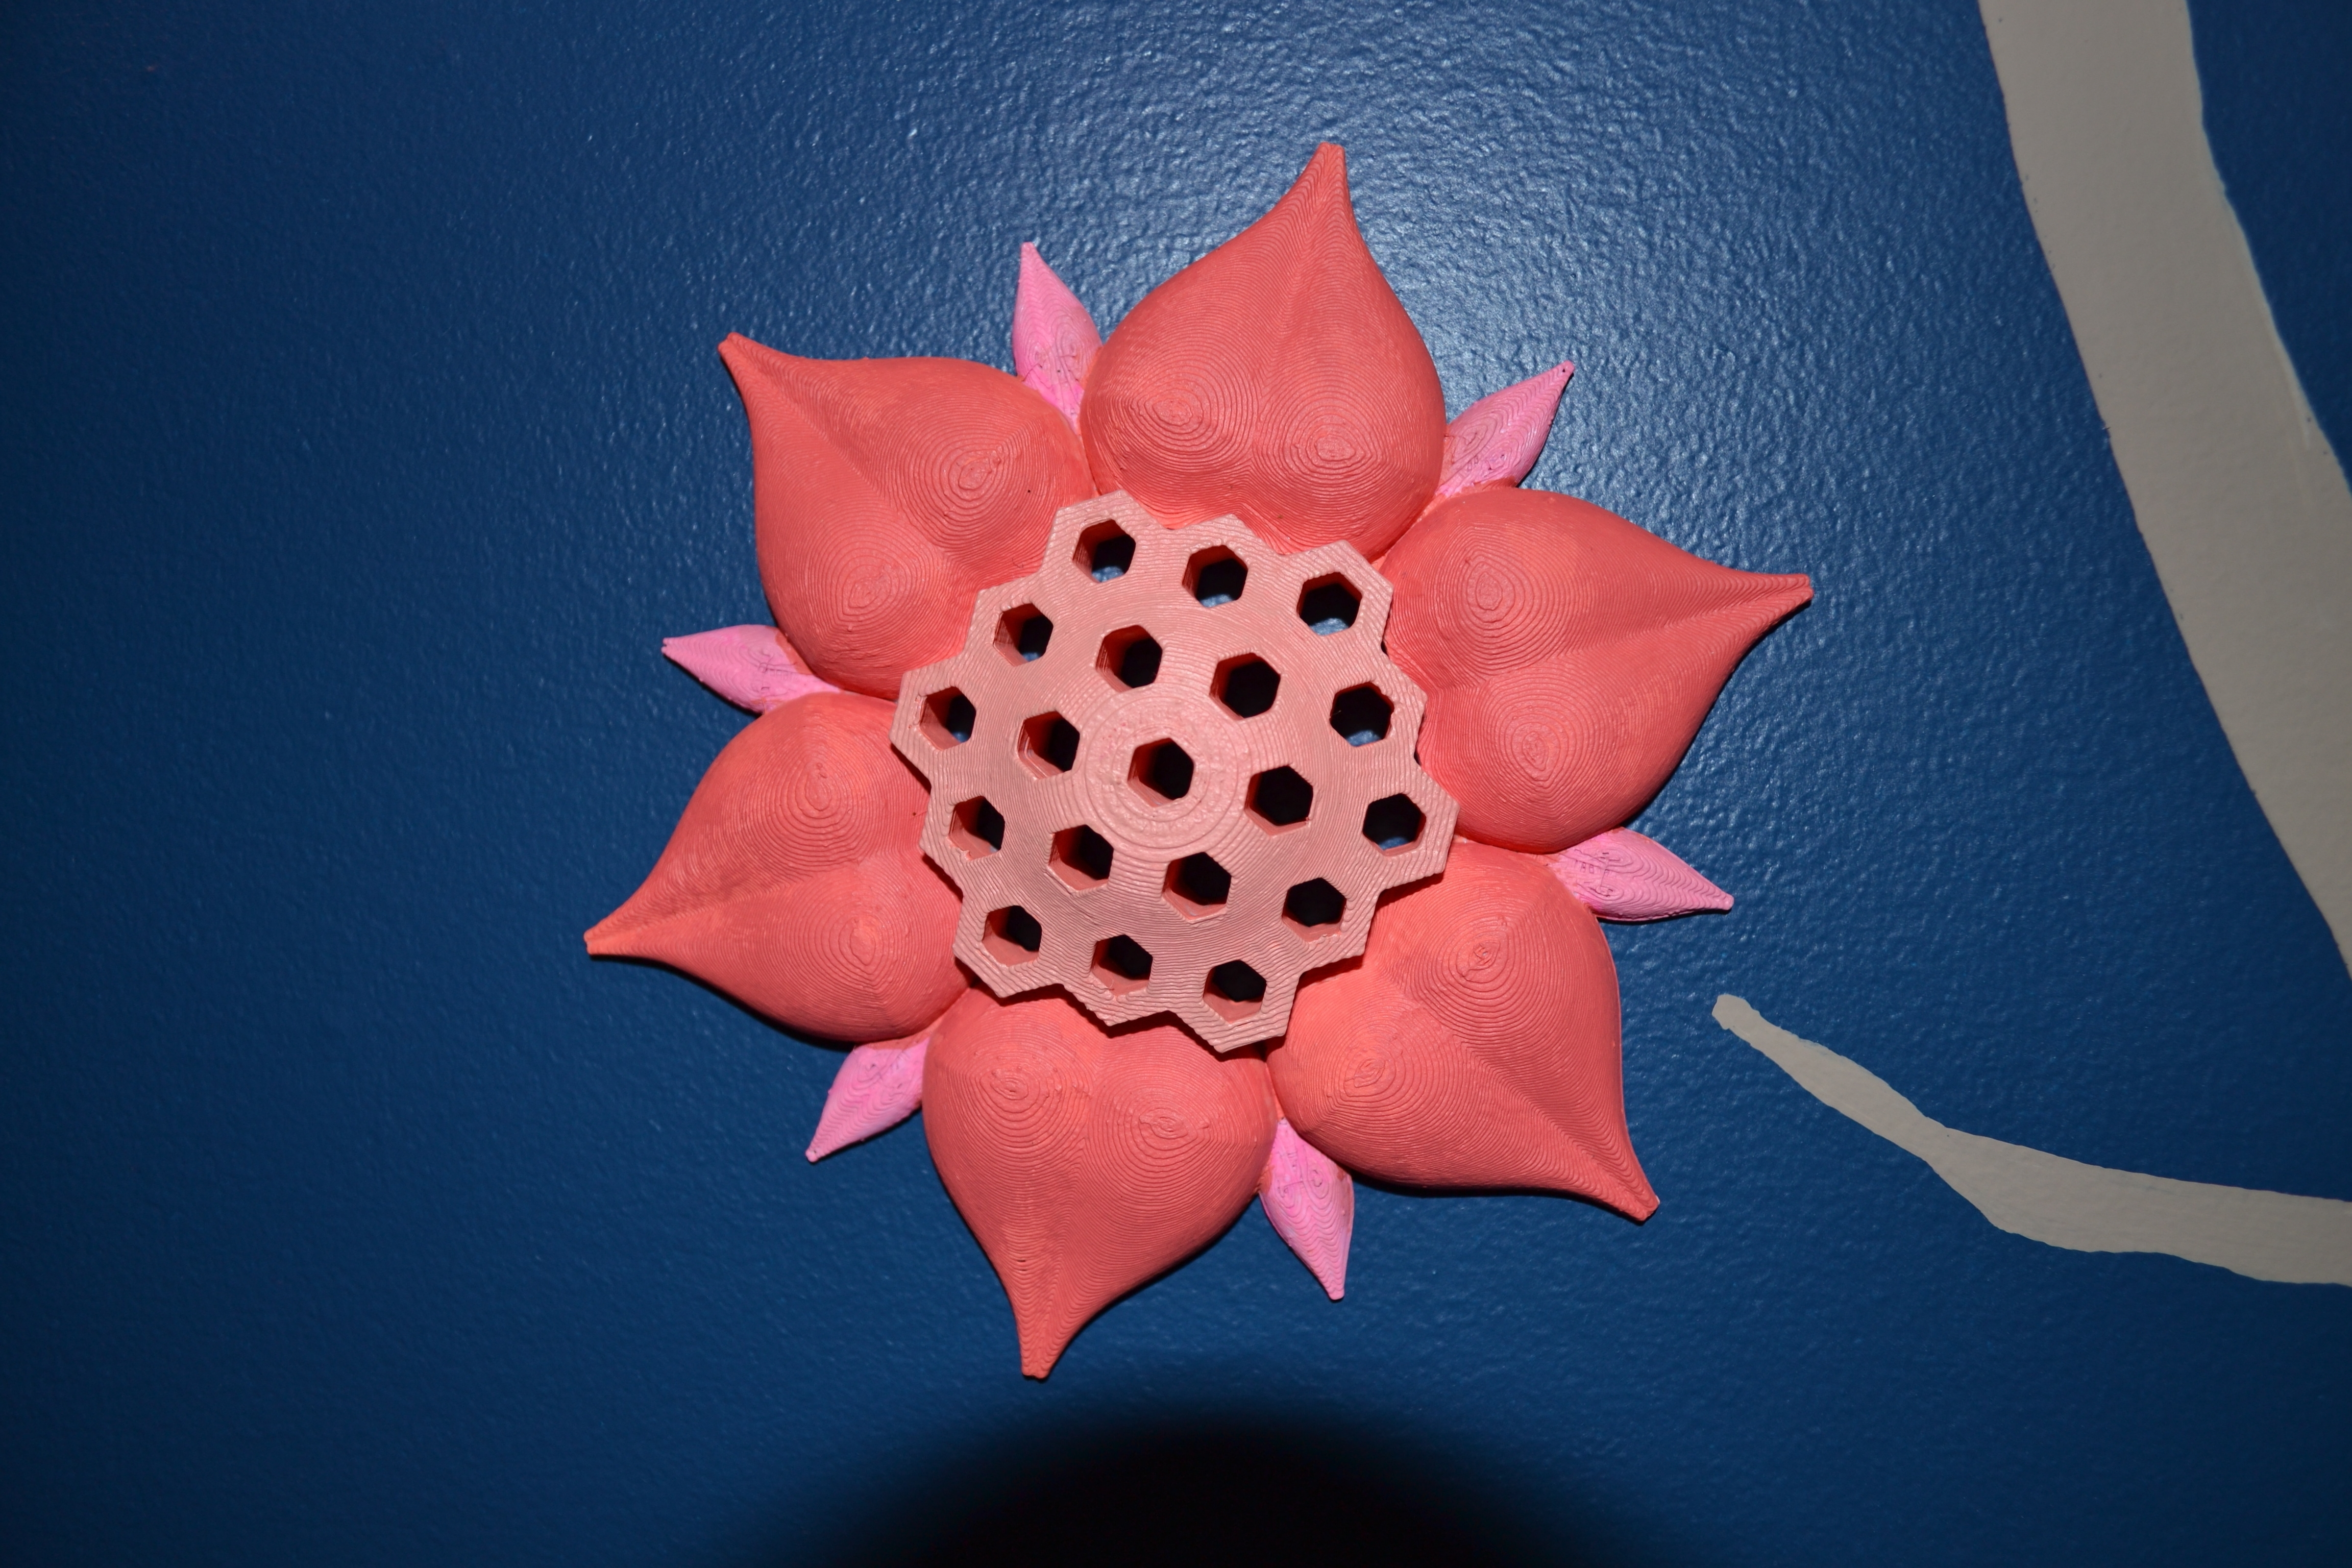 Fashionable 3D Printed Honey Comb Flower Wall Artconcept 2 Creation (View 9 of 20)